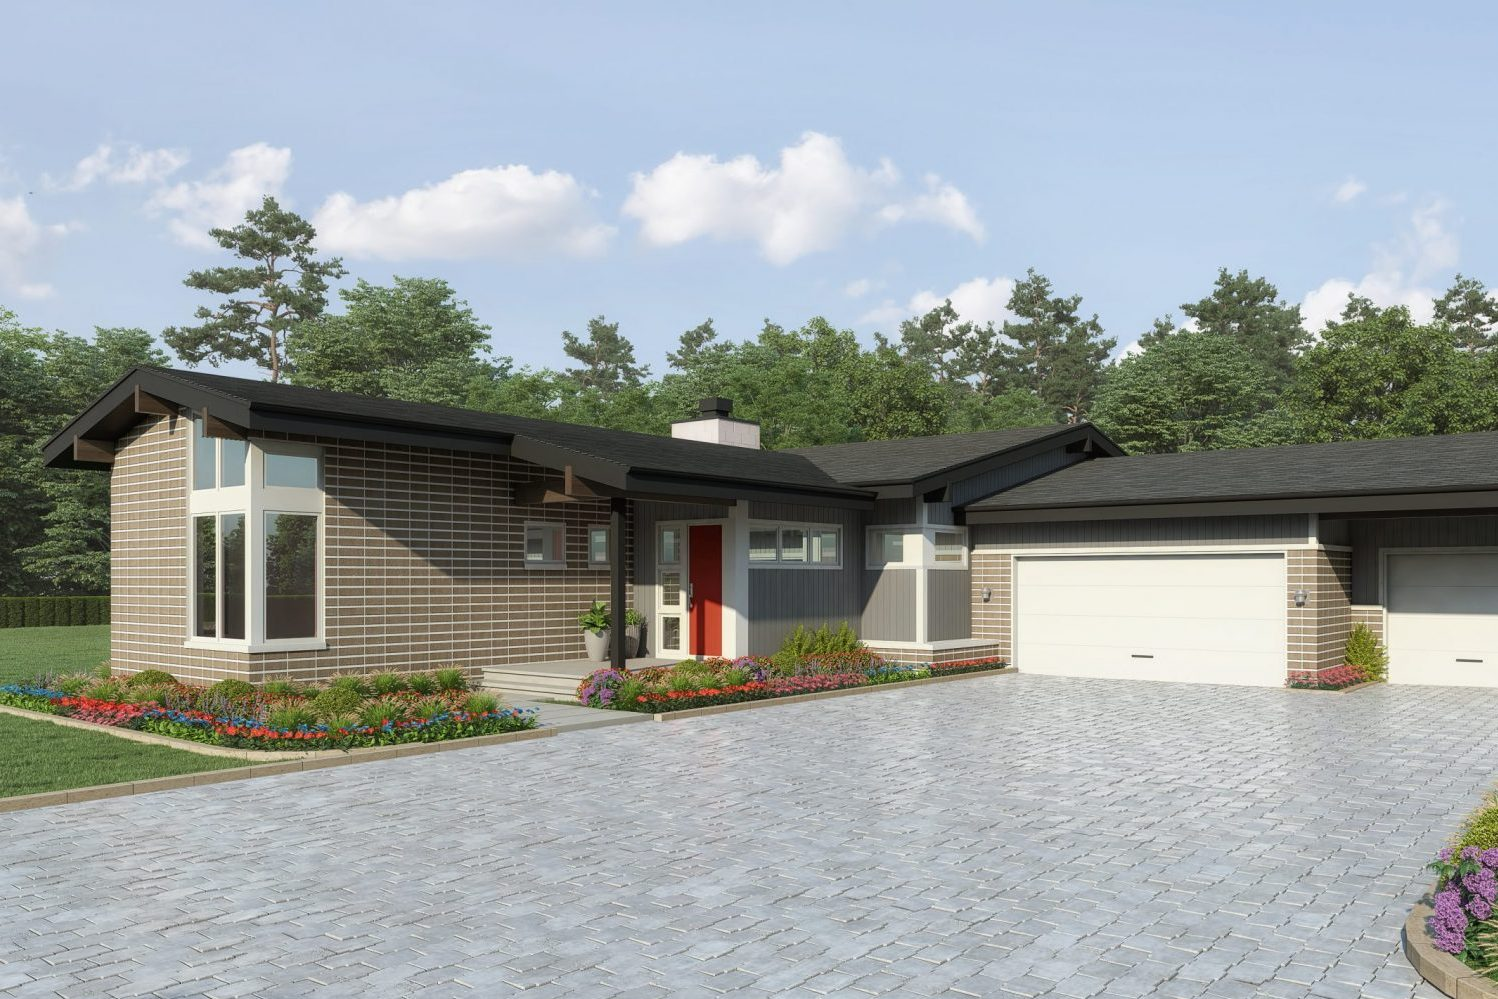 Mid Century Modern Ranch Style Home designed by Award Winning Residential Architecture Firm, Godden Sudik Architects